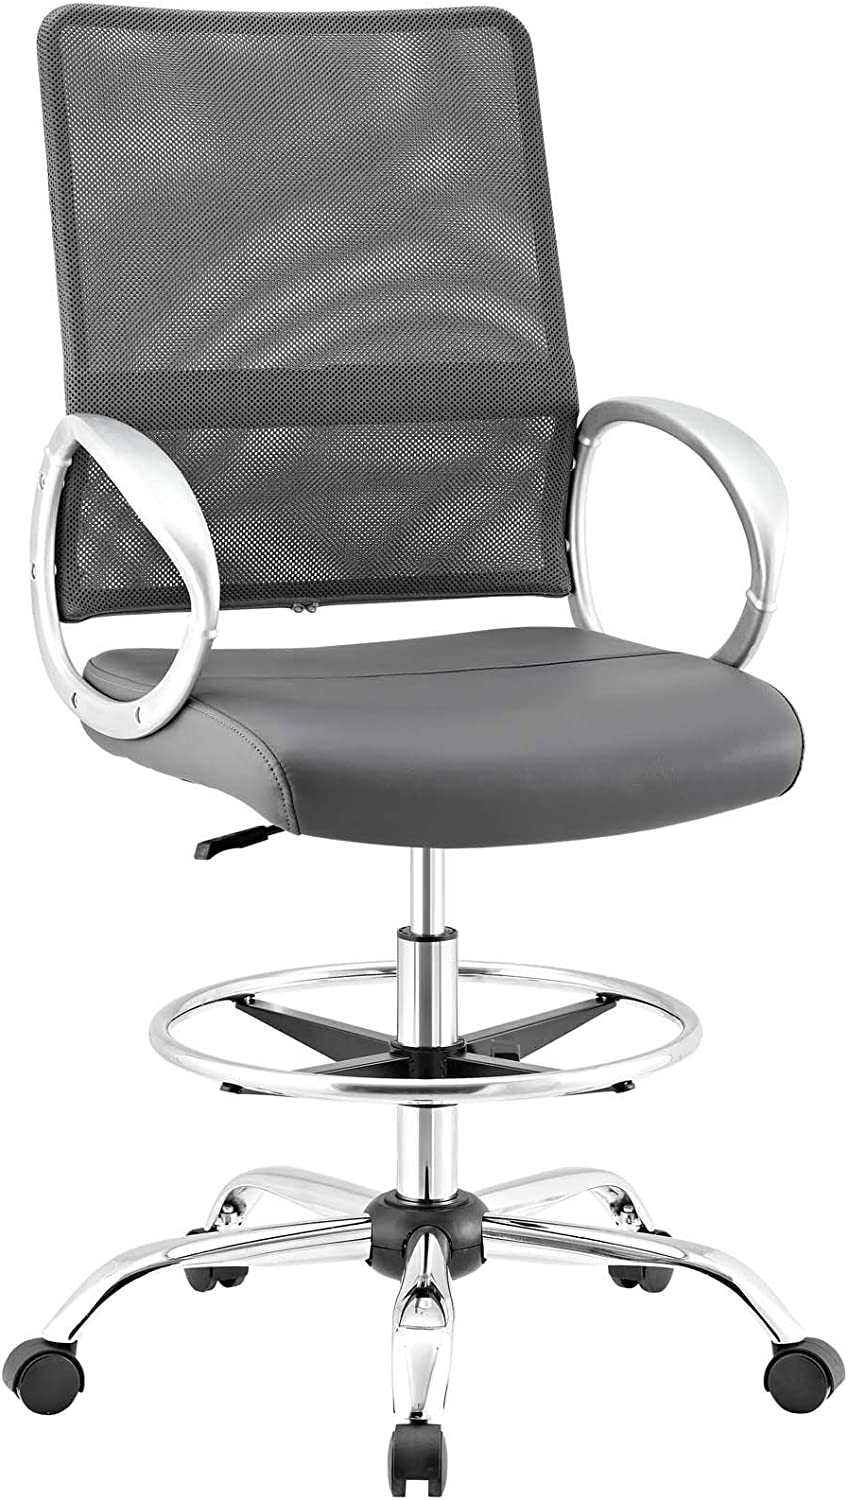 Modway Edge Office Drafting Chair With Feet Ring Mesh Back And Black Leatherette Seat Home Office Desk Chairs Home Office Furniture